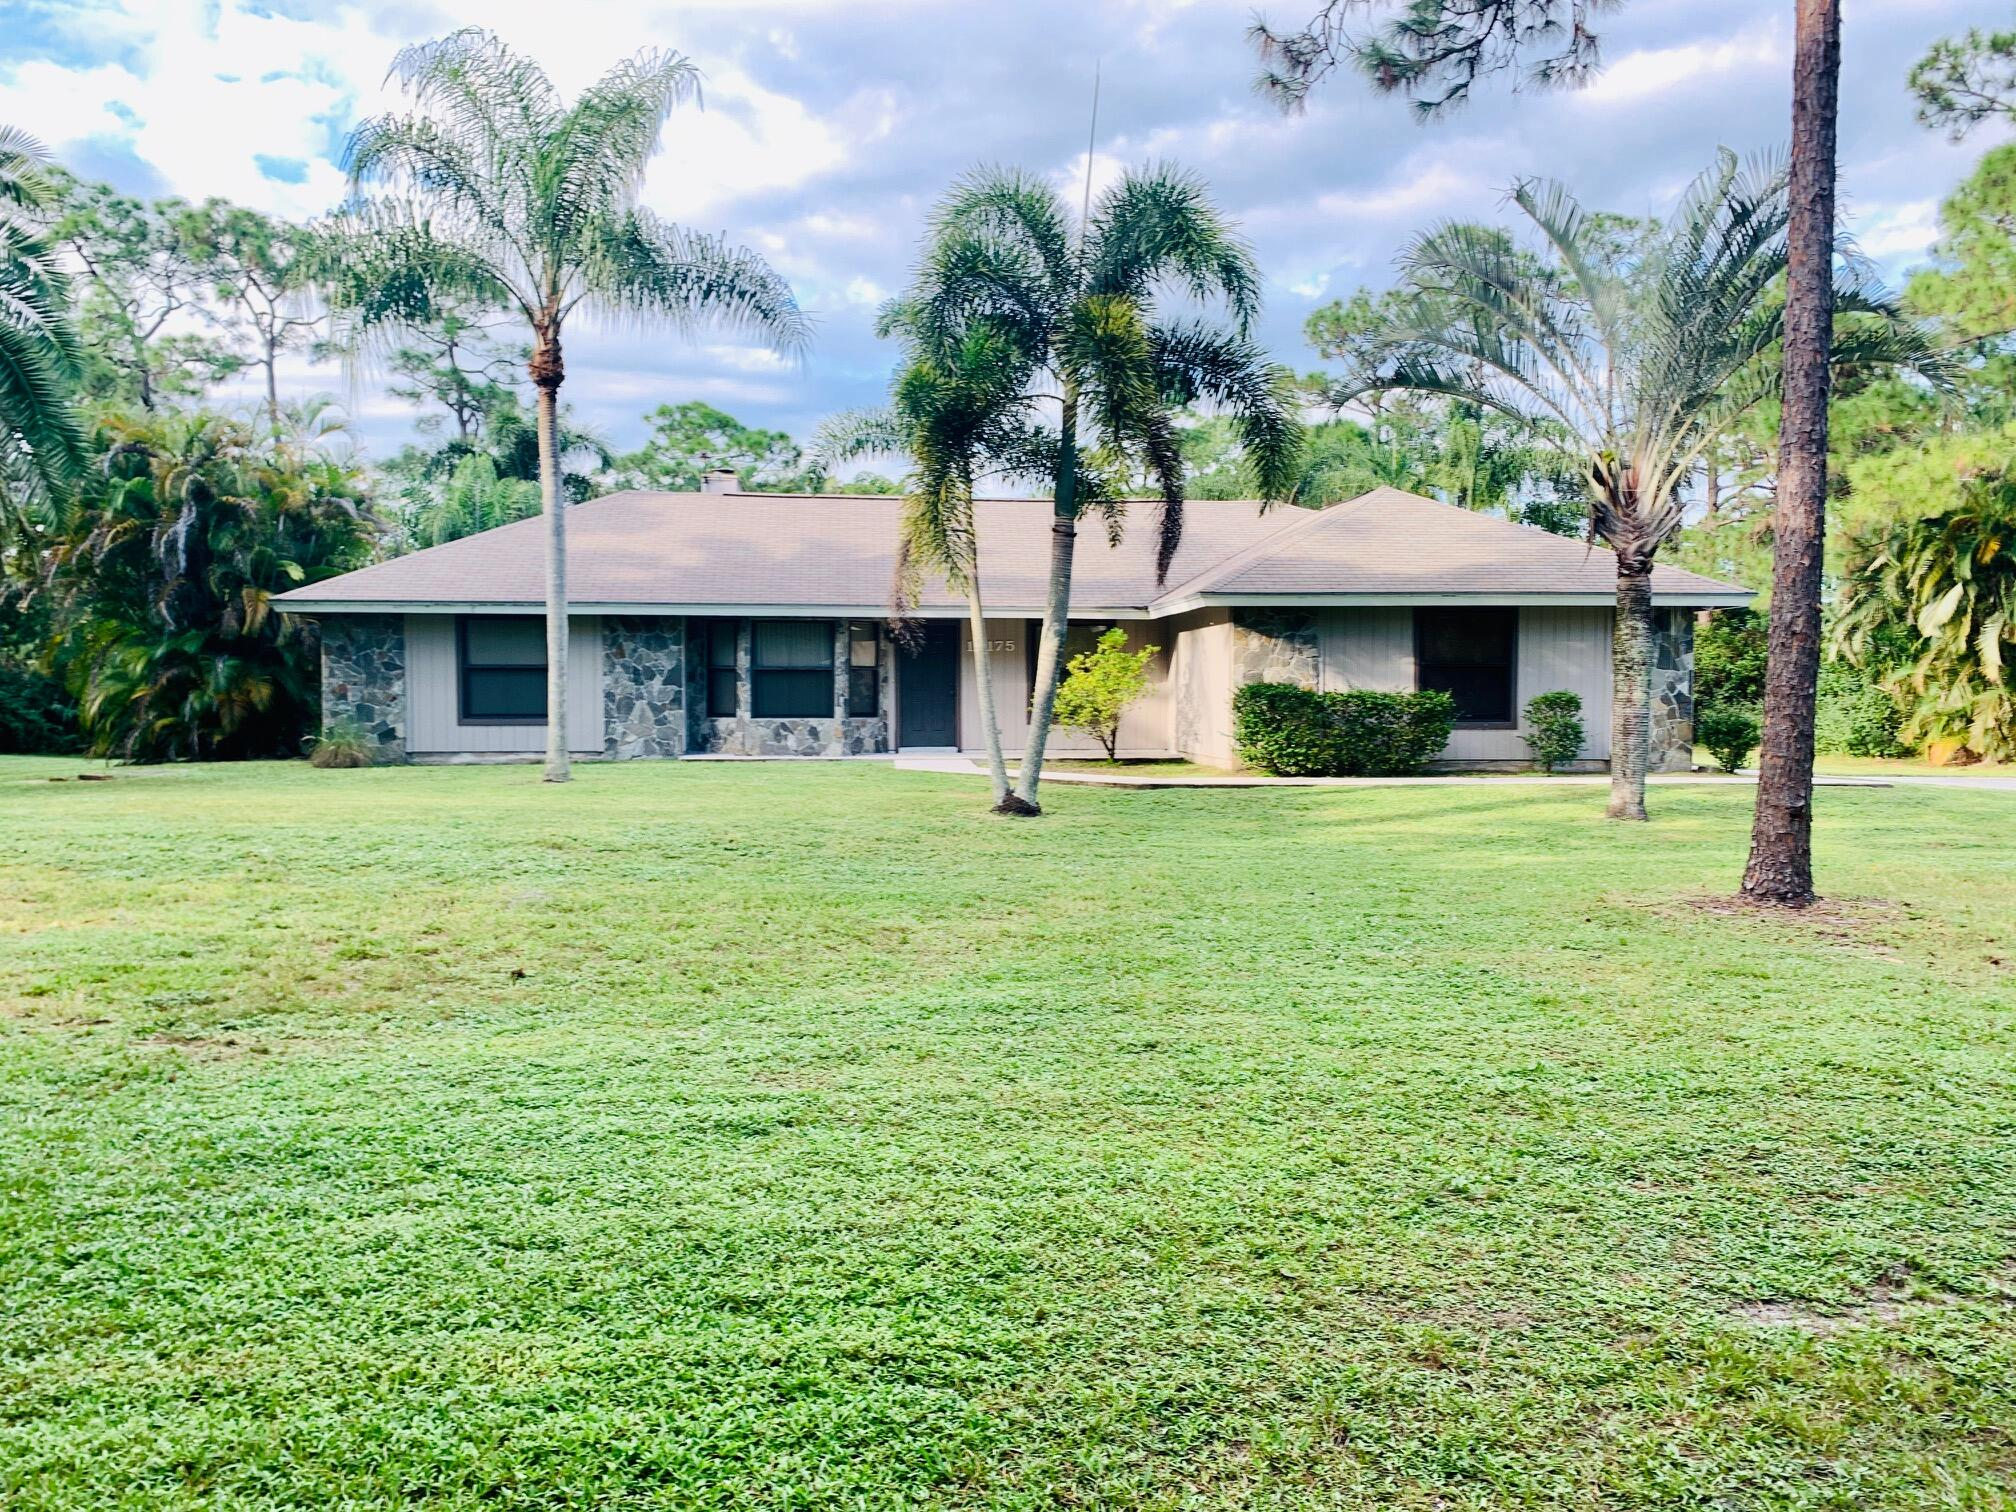 Lowest priced pool home in Jupiter Farms. 3/2/2 on 1.15 acres. Open floor plan. Charming vaulted ceilings with wood beams and real wood burning fireplace. Impact windows and original owner. Screened in patio and large pool on private lot.